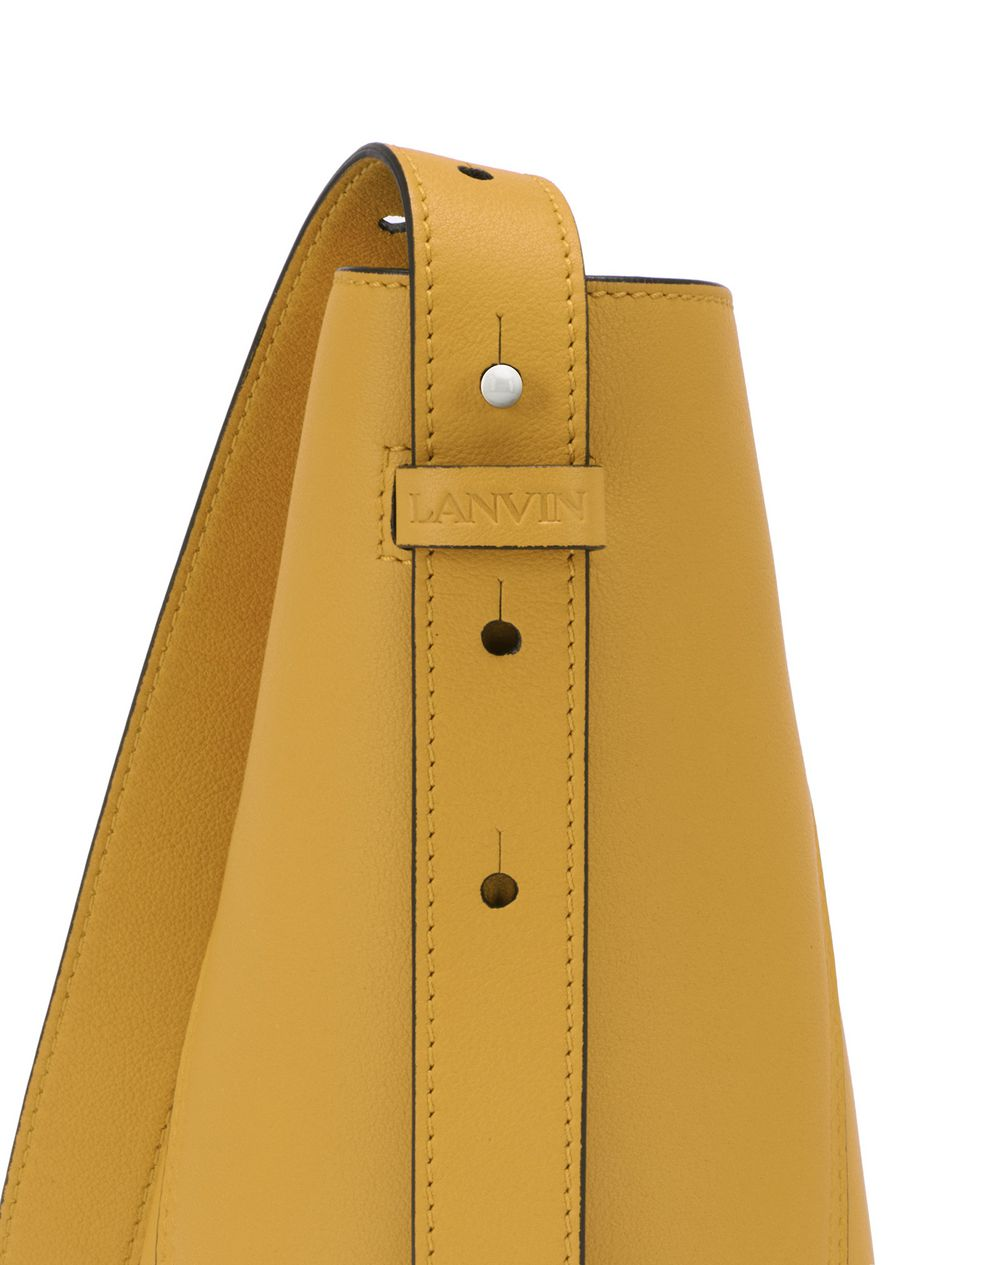 HOOK BICOLOR BAG MEDIUM - Lanvin